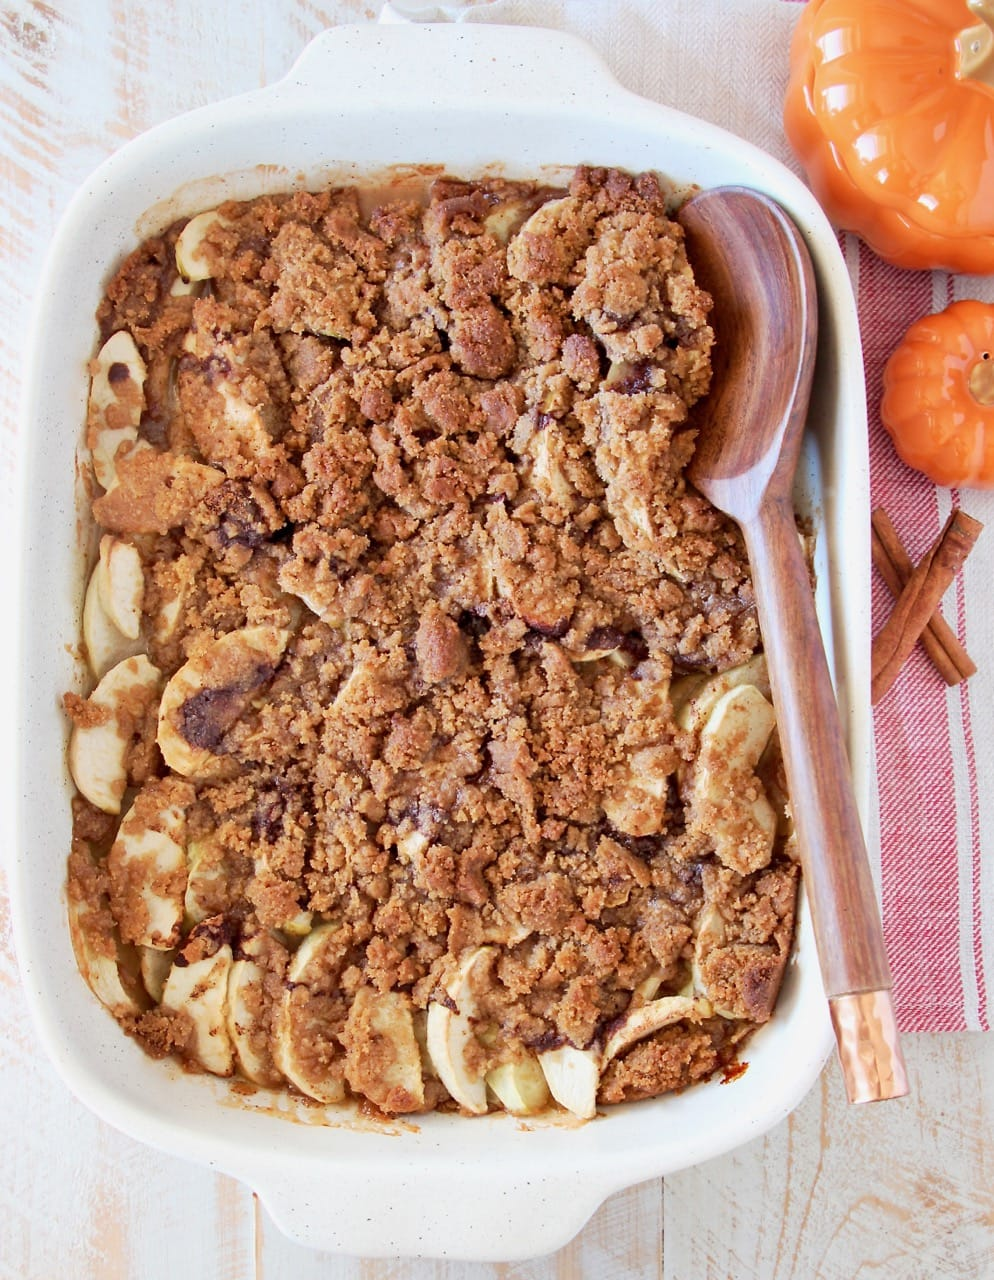 Overhead shot of apple crumble in a white casserole baking dish with a wooden spoon, sitting next to small orange pumpkins and cinnamon sticks on a red and white striped towel